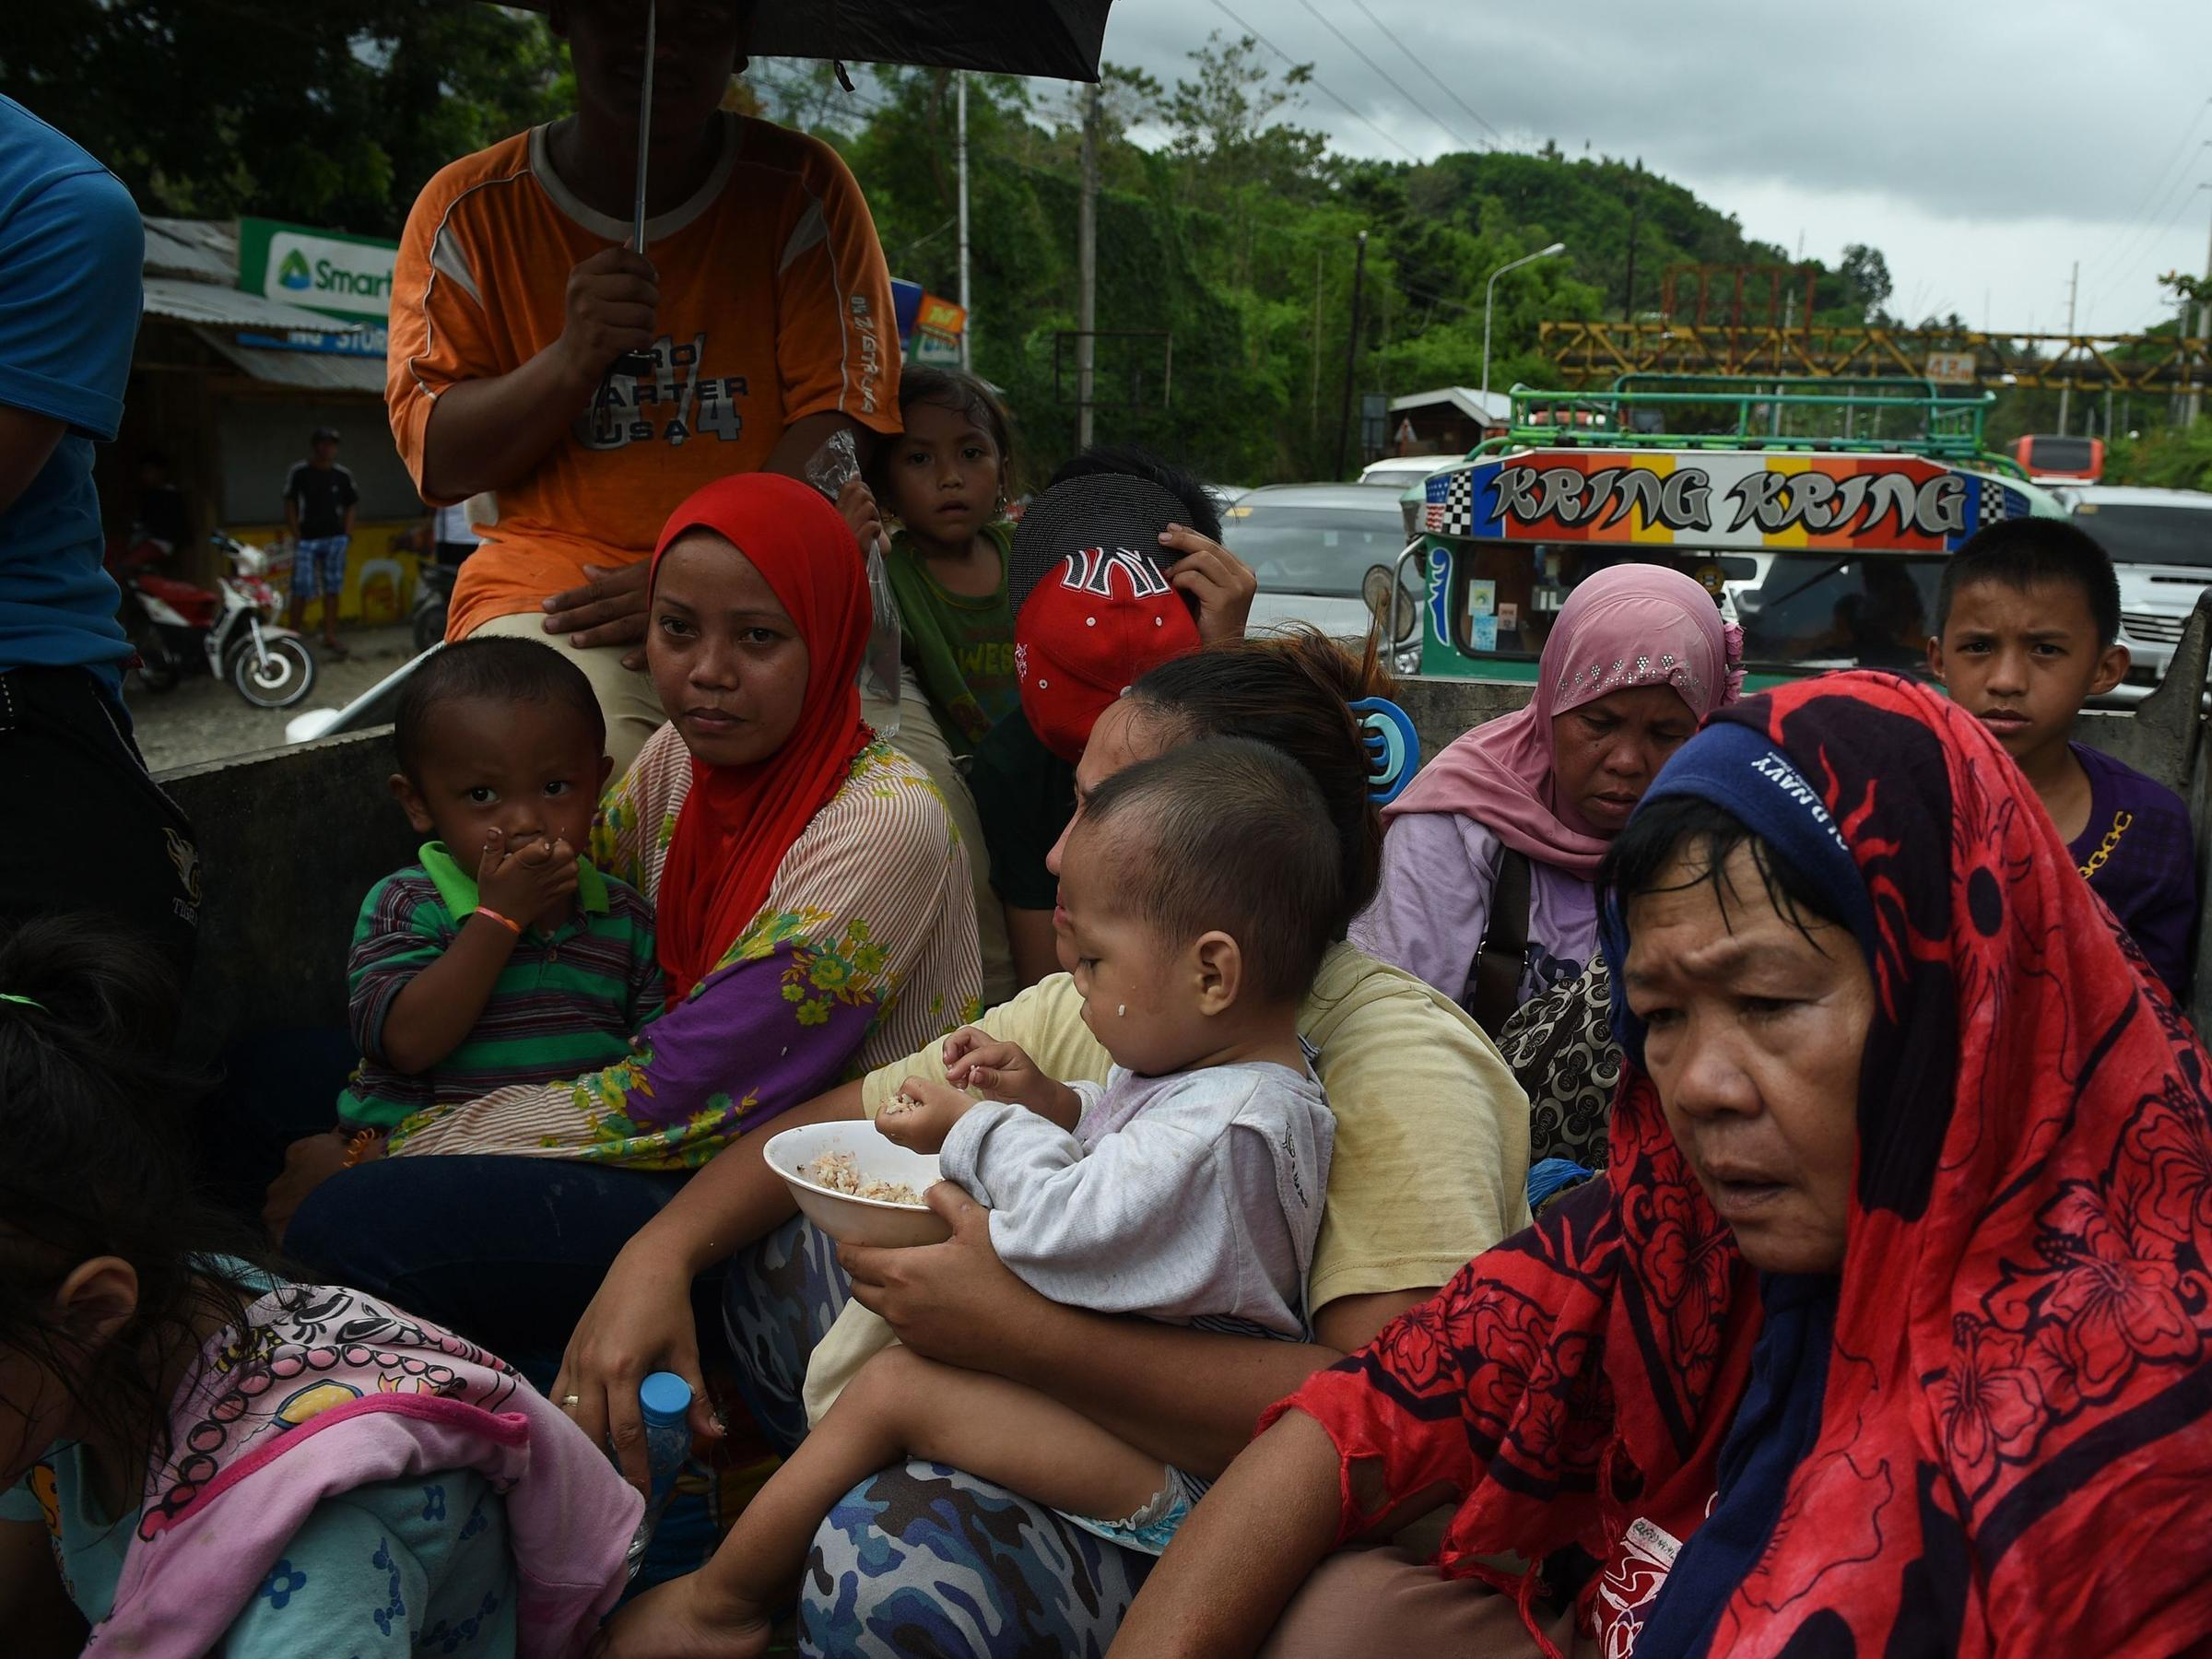 Residents fleeing Marawi City sit cramped in a truck that's stuck gridlock near a police checkpoint at Iligan City nearby on Mindanao